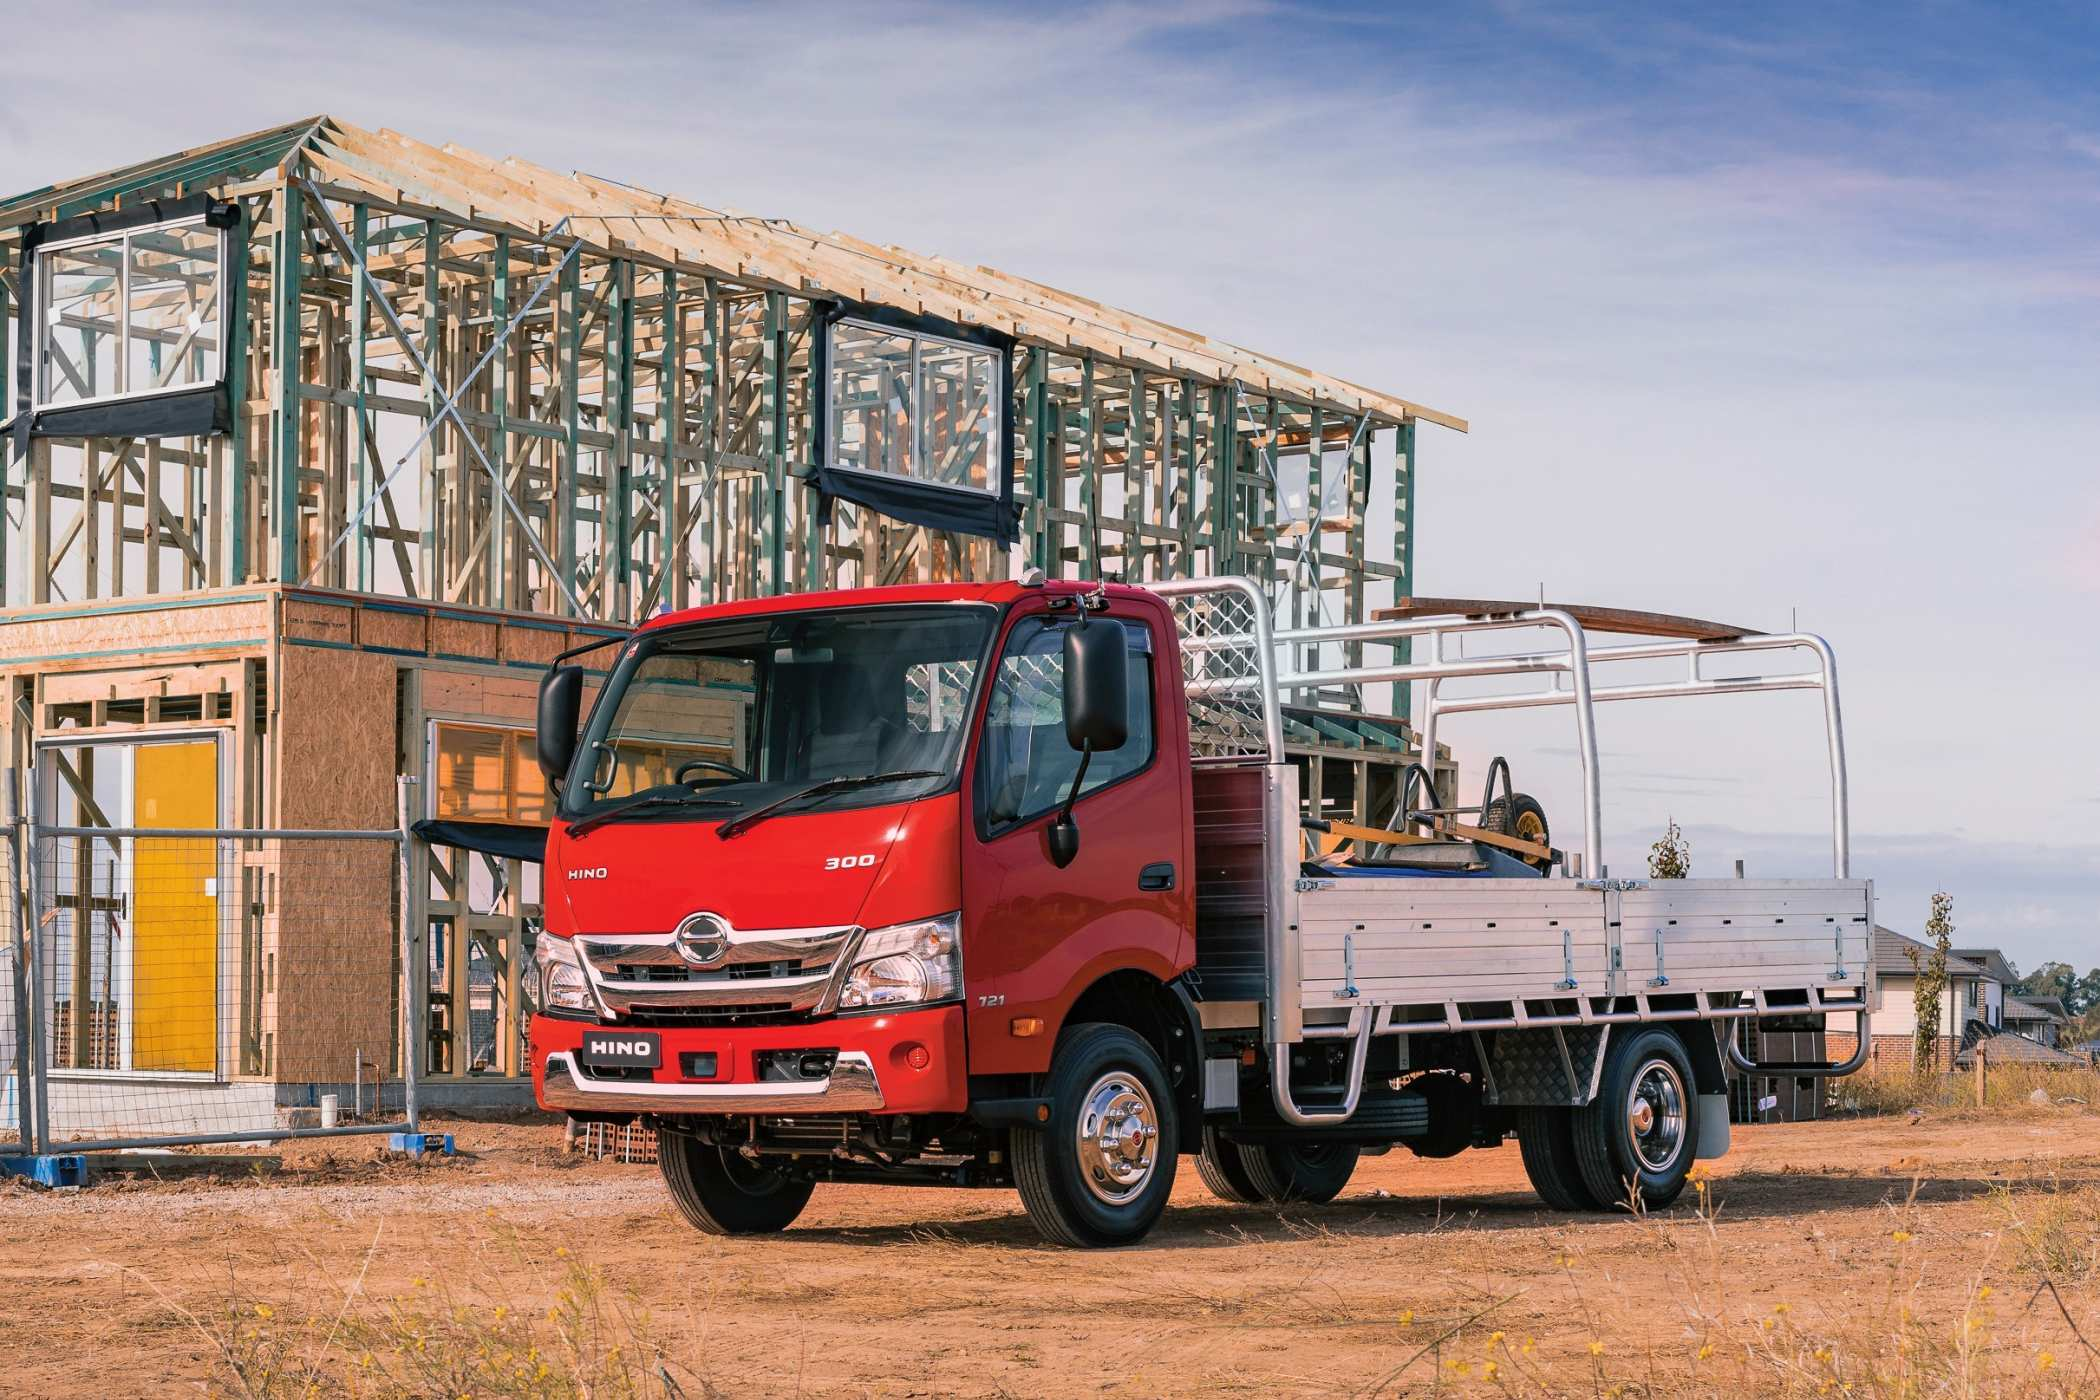 Hino 300 Series 721. Photo by Aaron Lam/The Photo Pitch